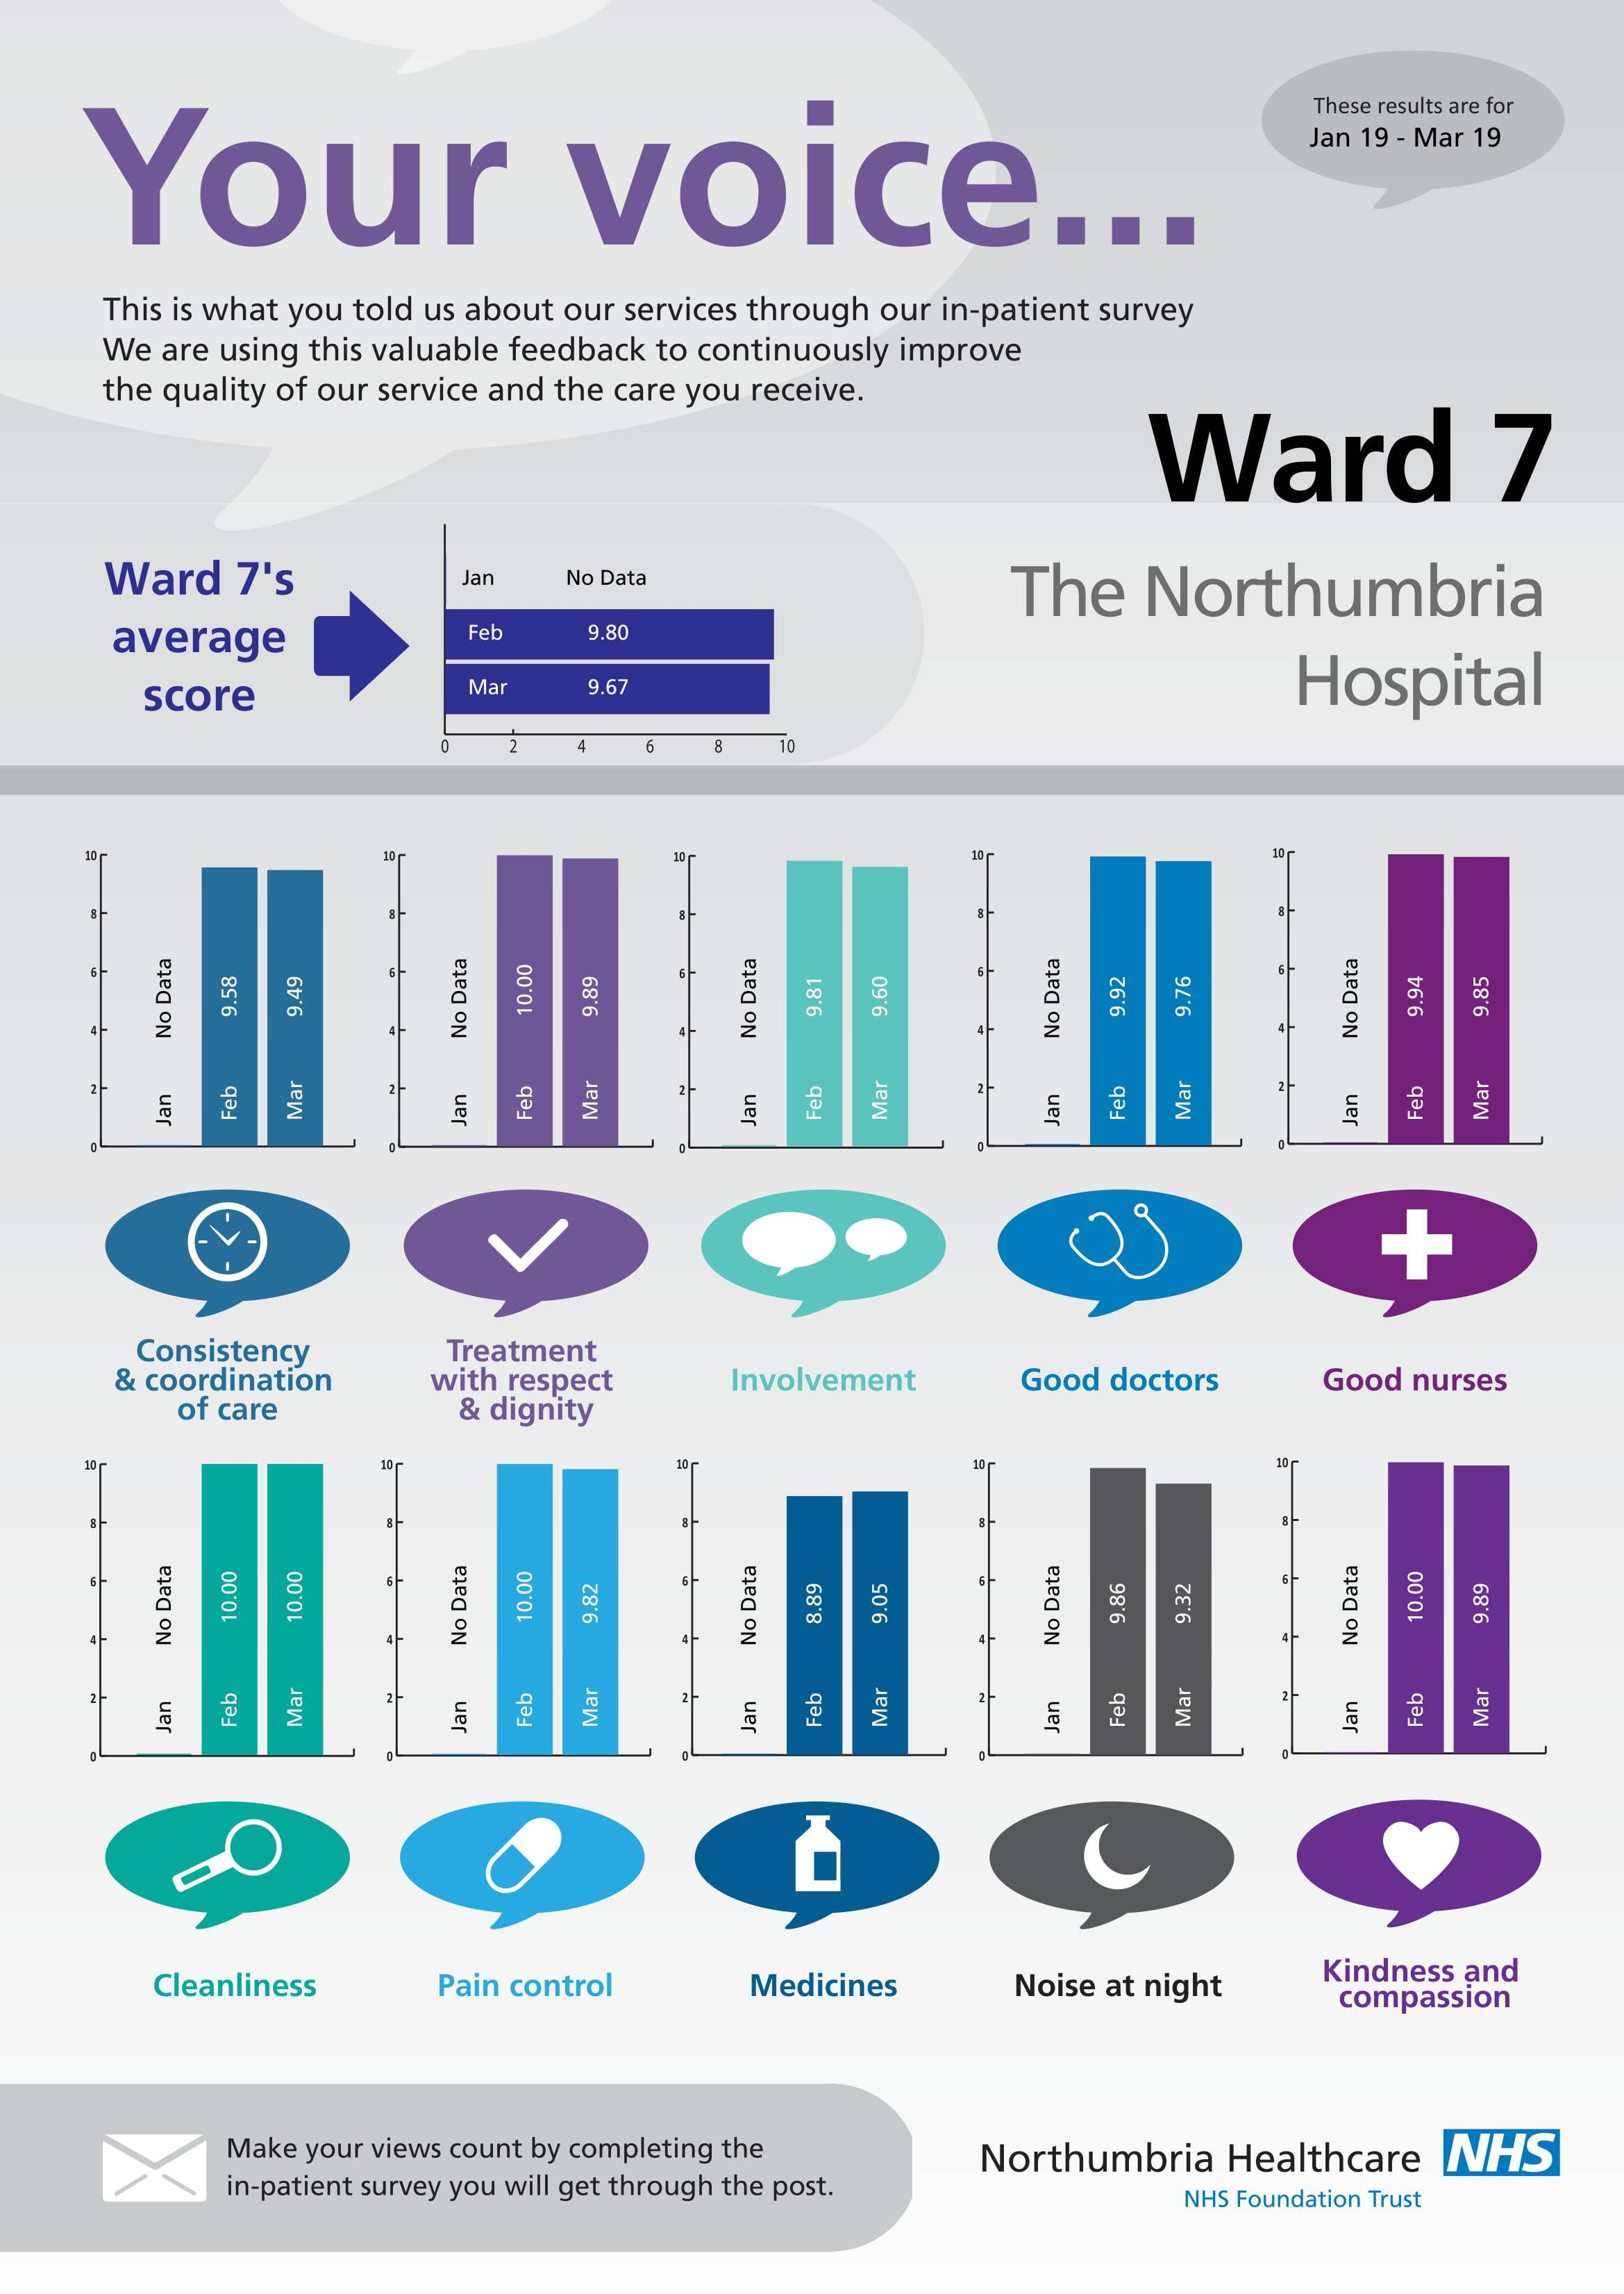 The Northumbria Hospital - Ward 7-1